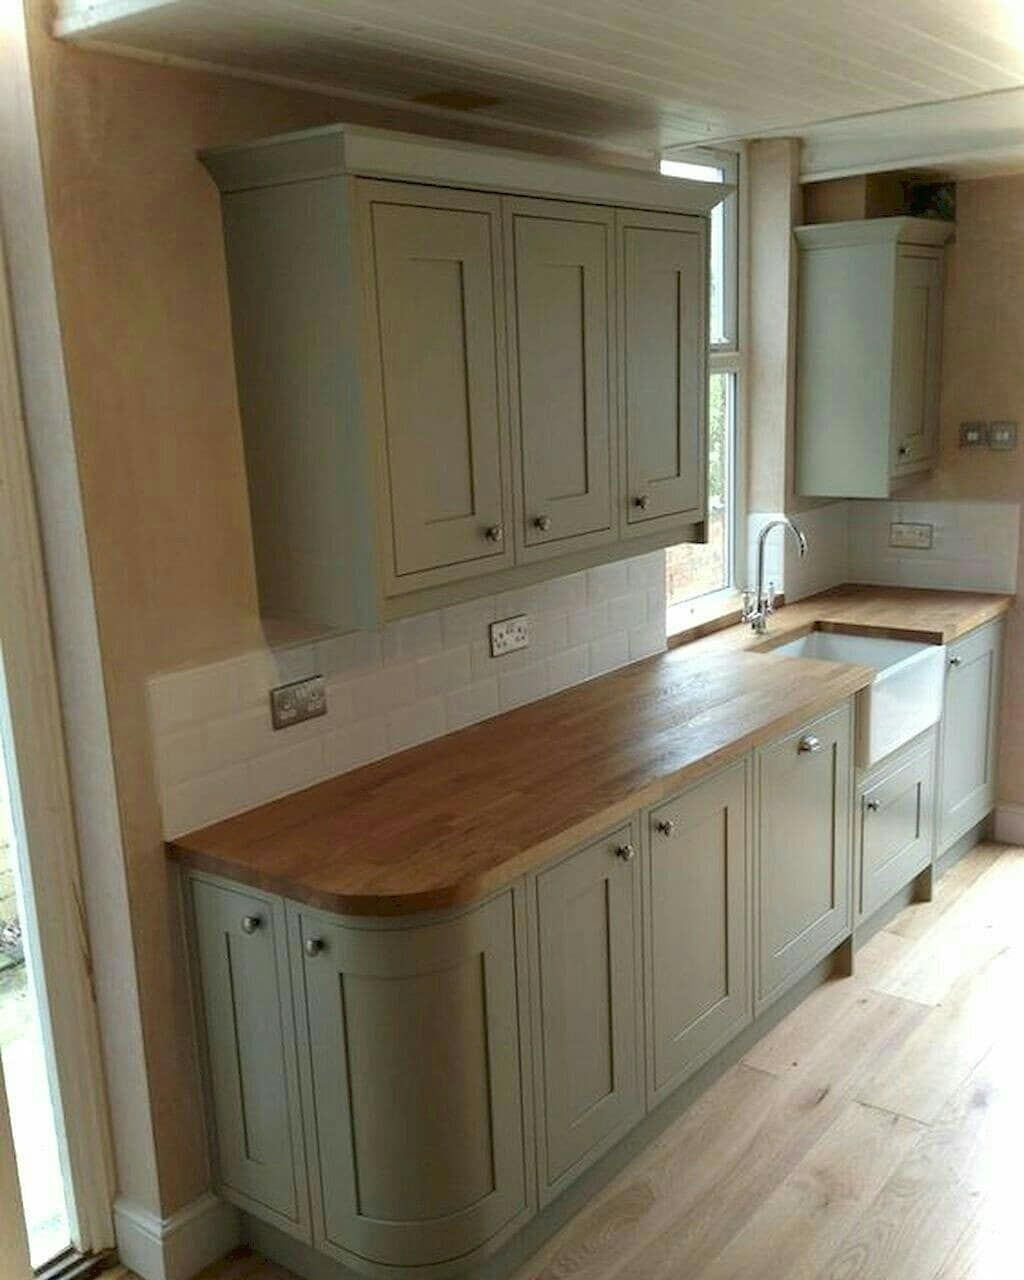 Masters Kitchen Base Cabinets Kitchen Set Duco Created By Casa Zerin Decor 081212216409